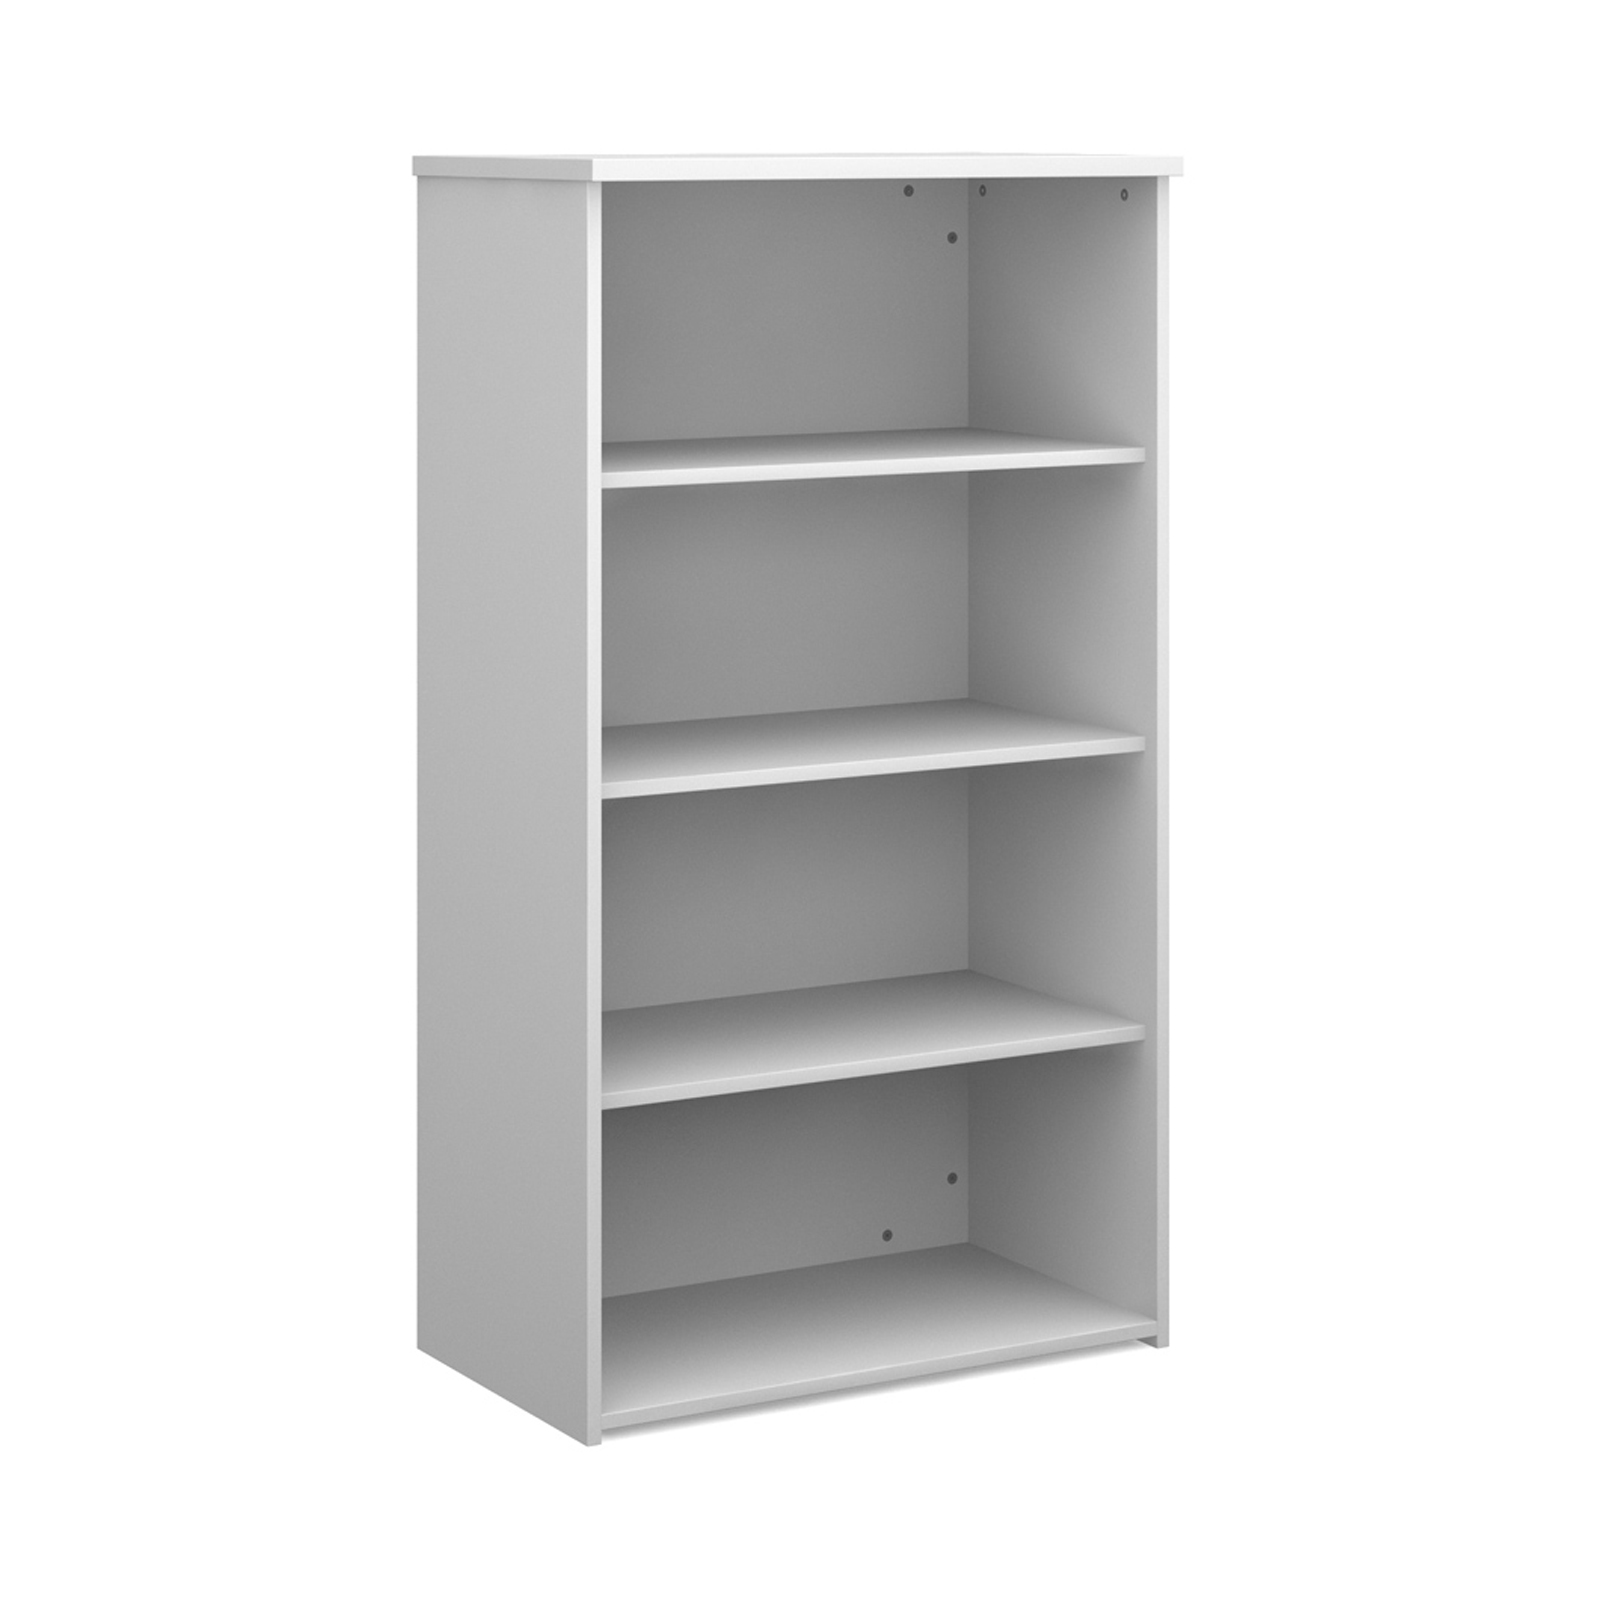 Over 1200mm High Universal bookcase 1440mm high with 3 shelves - white